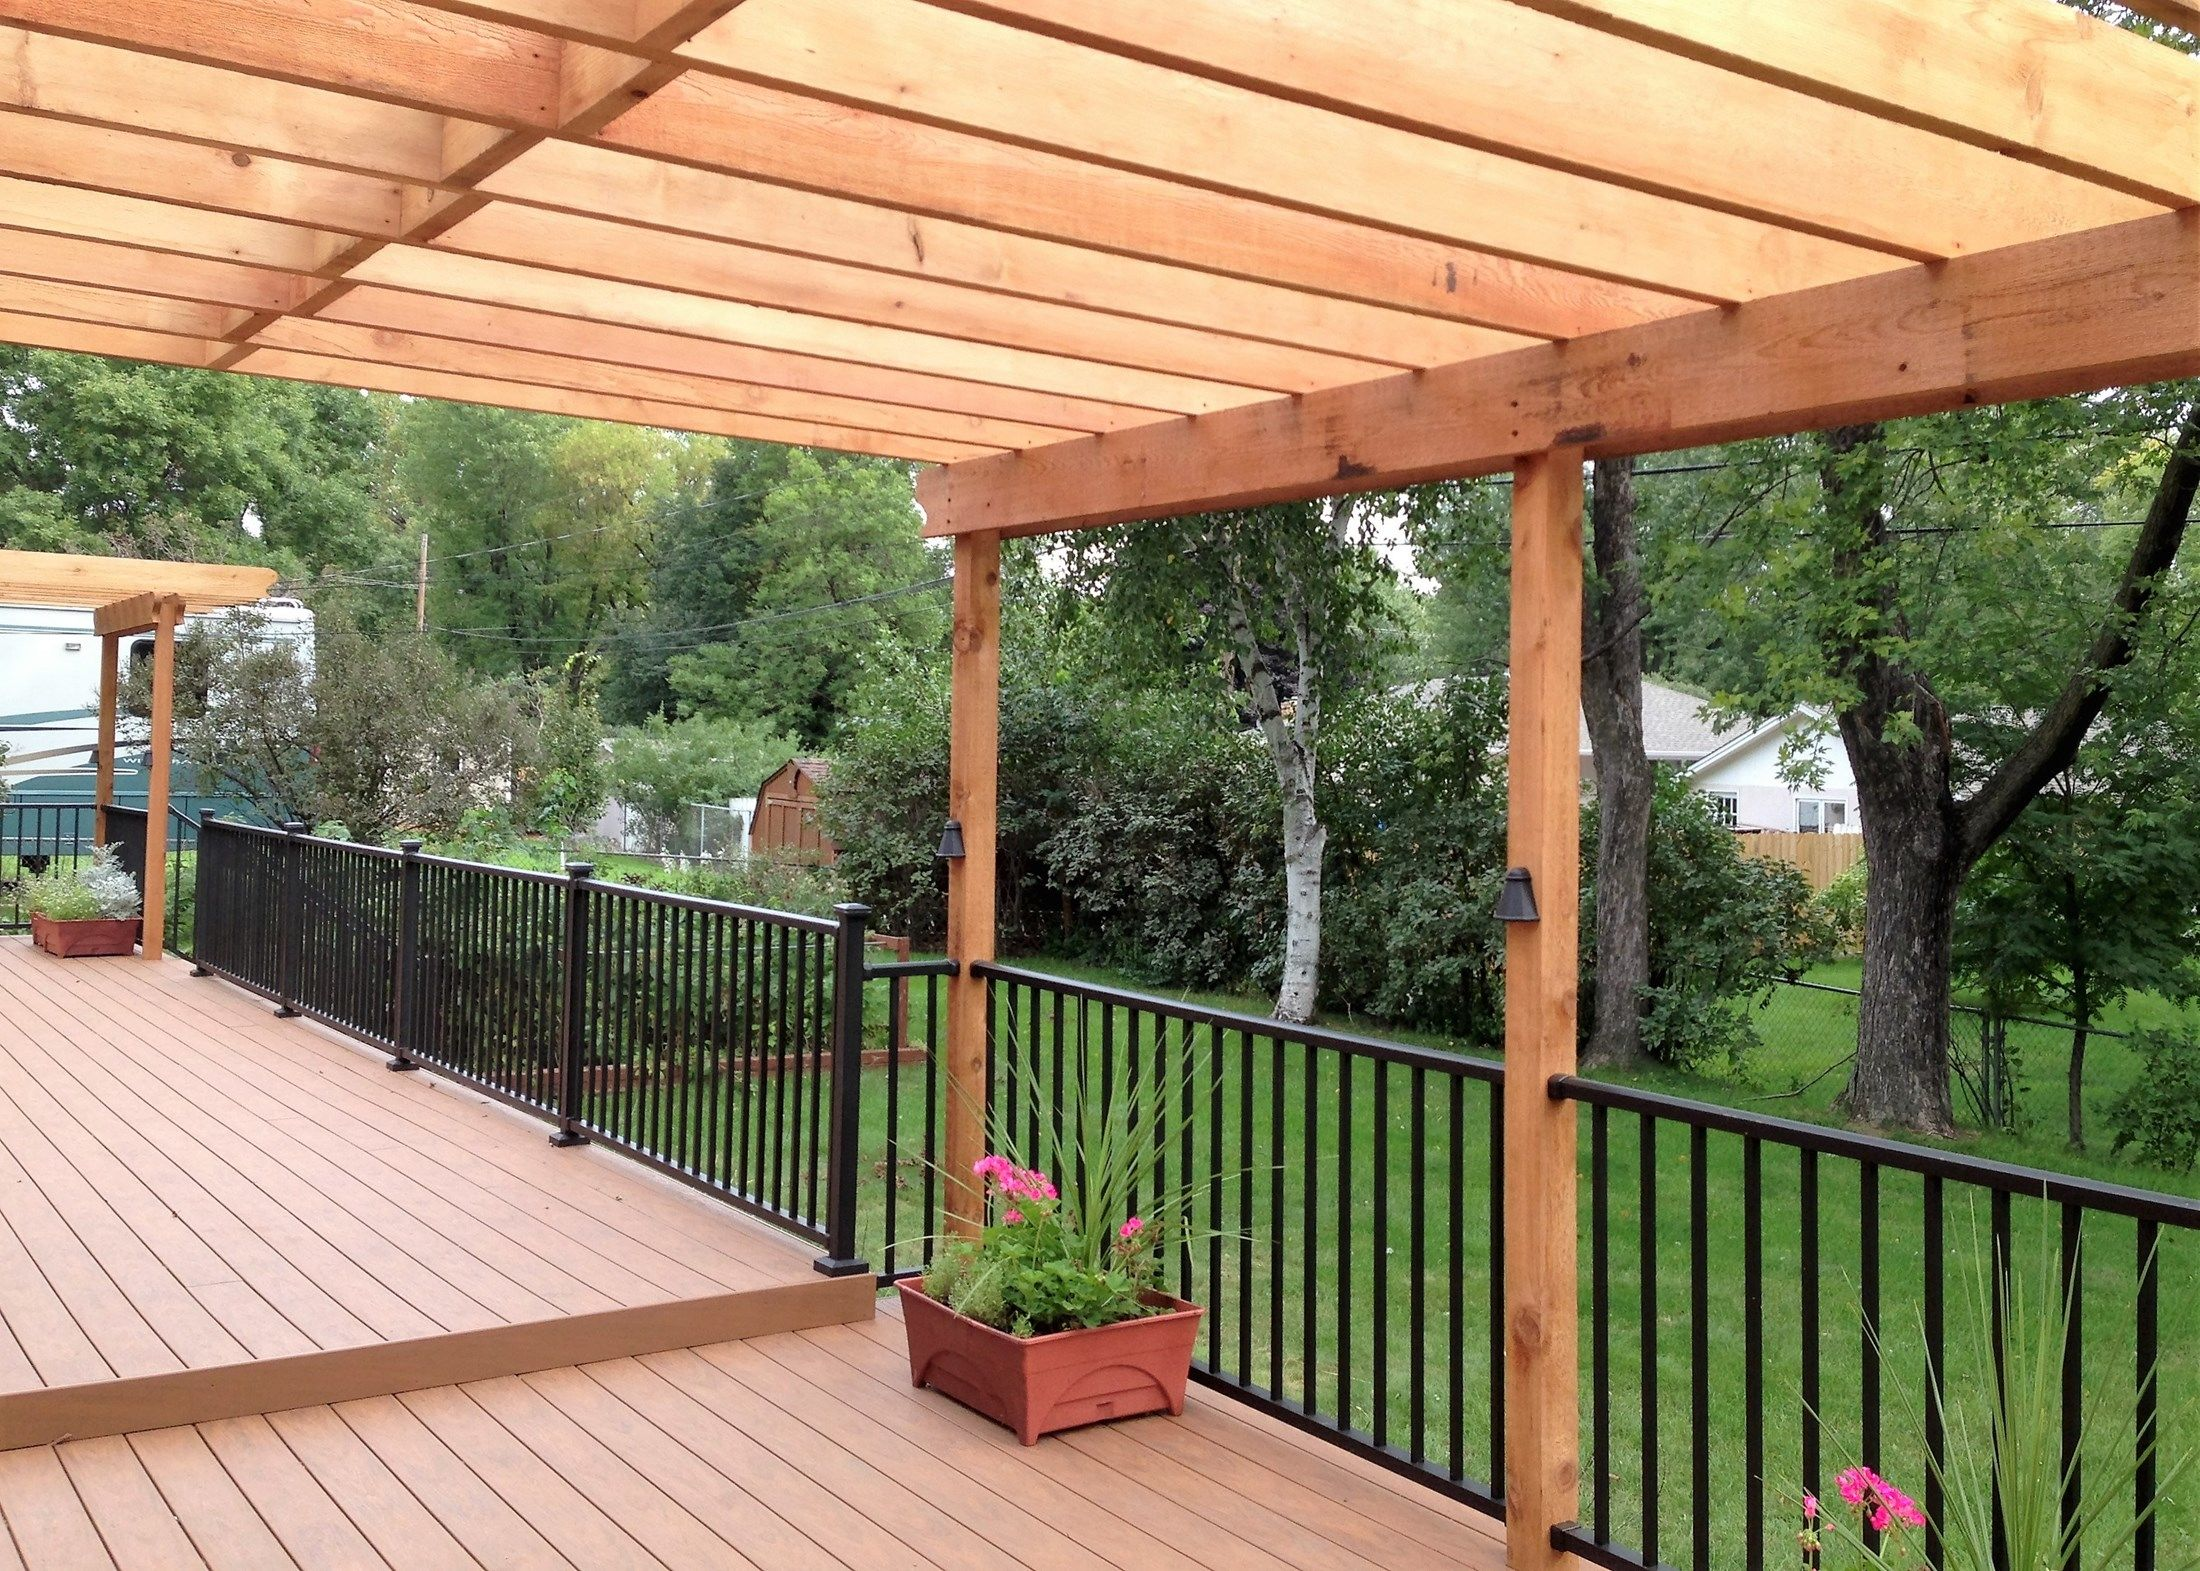 Pergola over Deck - Picture 6460